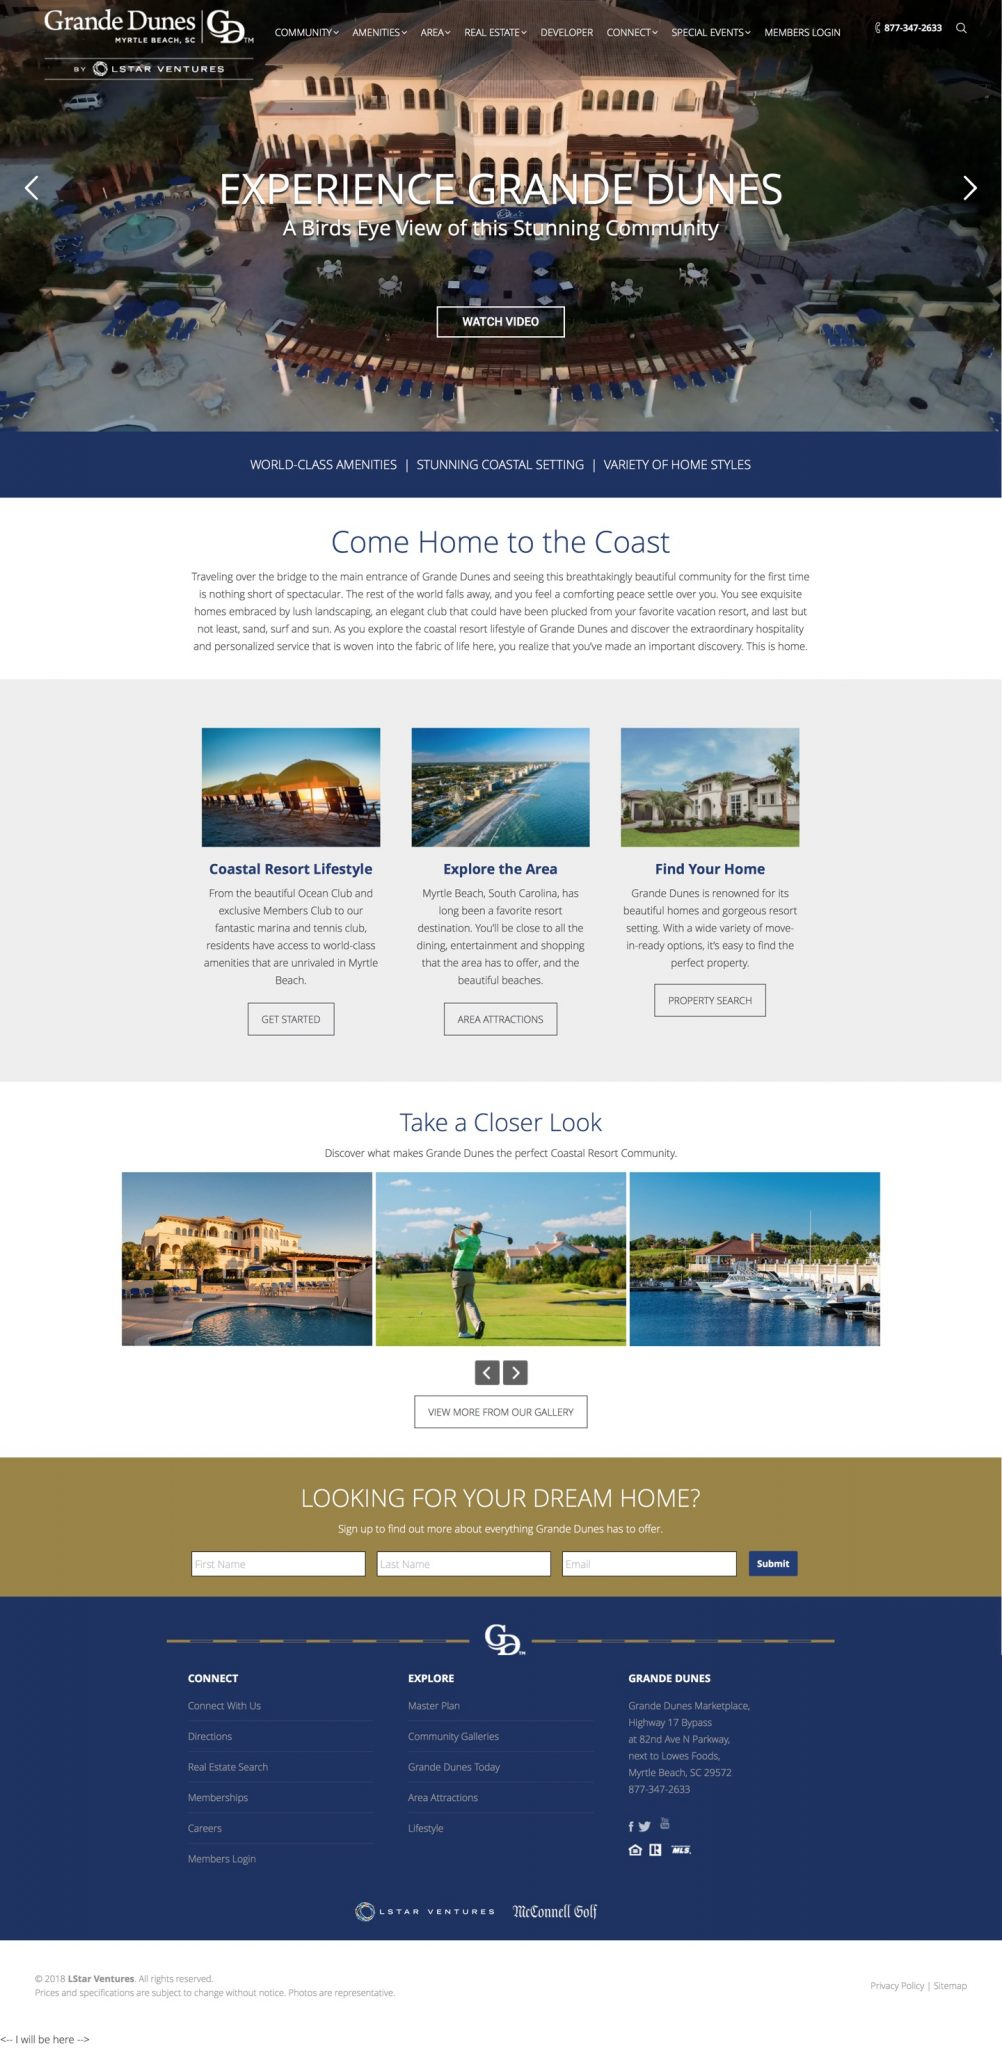 Explore the coastal resort lifestyle of Grande Dunes in Myrtle Beach, SC and discover the beautiful homes and world-class amenities unrivaled in this area.